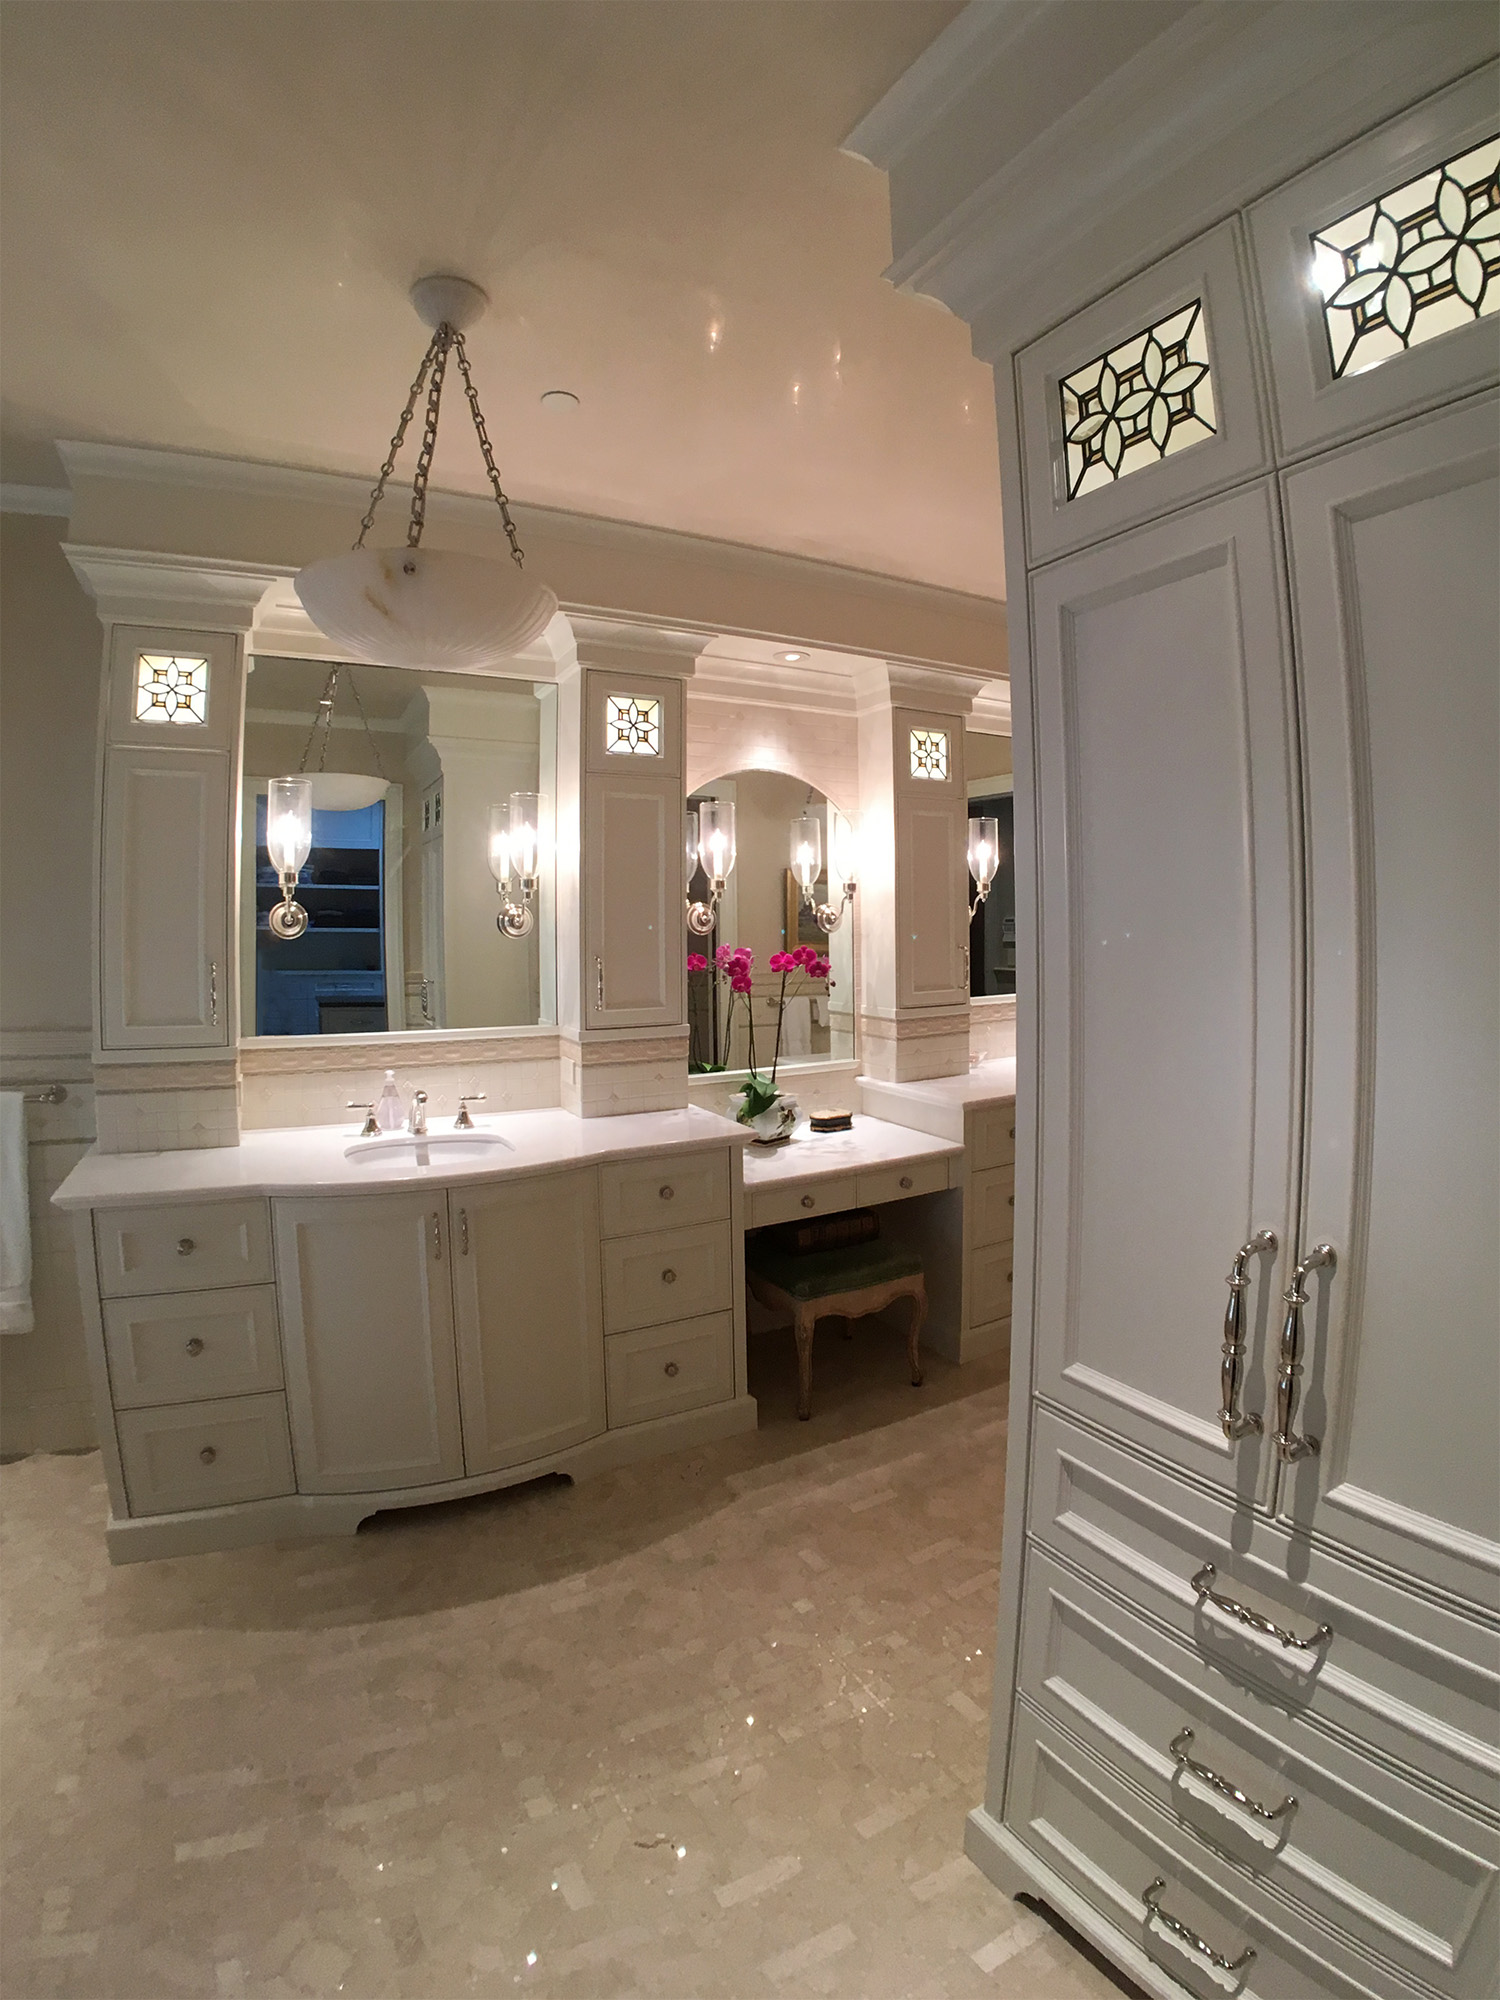 bevel cluster traditional leaded glass stained glass cabinet door studio palo alto atherton california san francisco san jose legacy glass.jpg